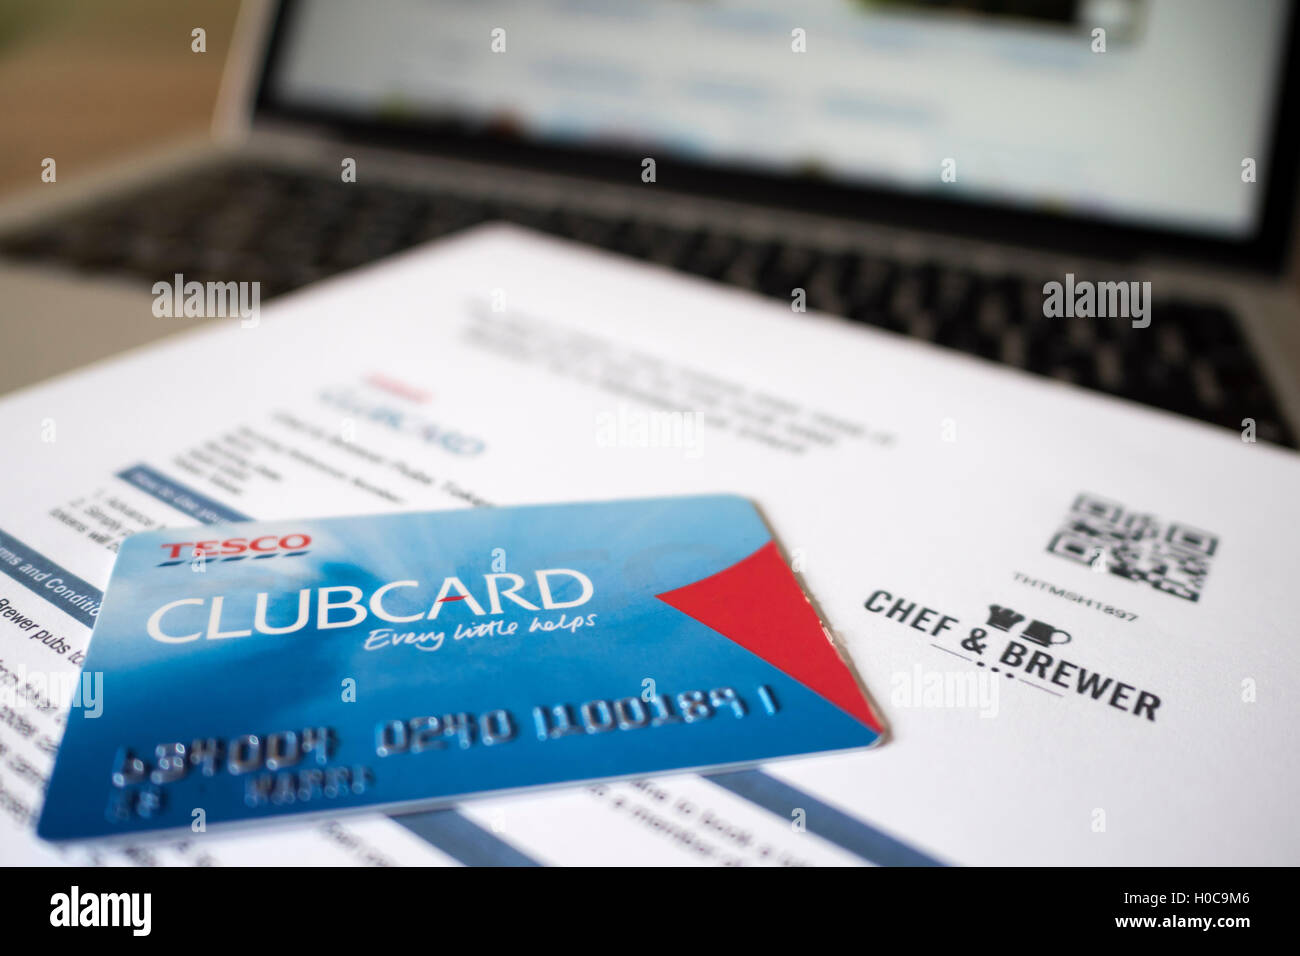 Tesco clubcard stock photos tesco clubcard stock images alamy tesco rewards stock image reheart Gallery